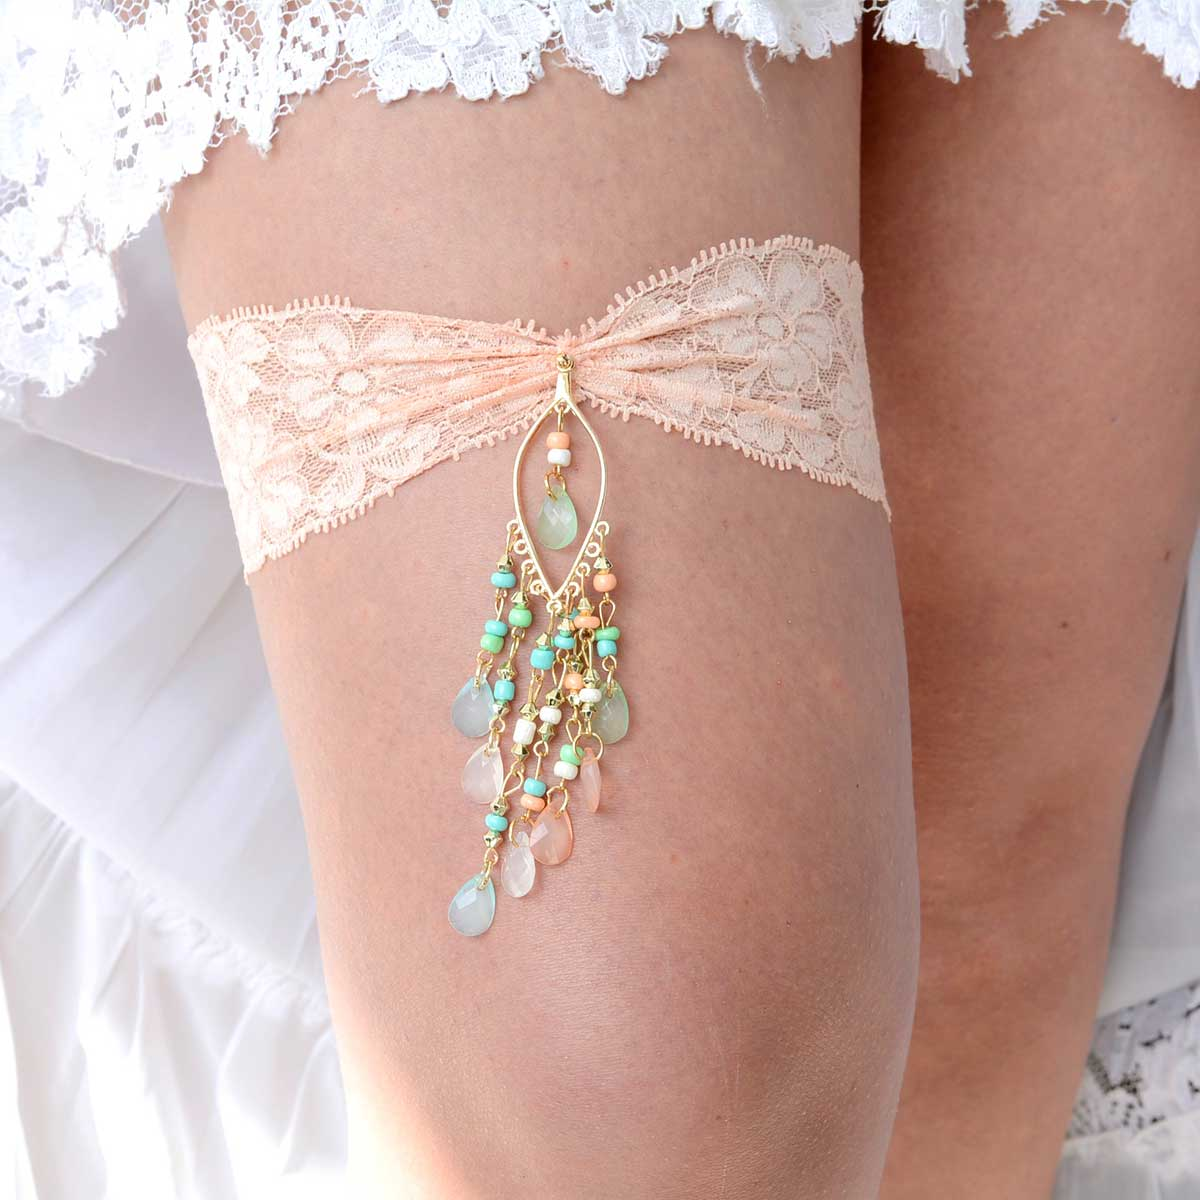 Peach & Mint Rhinestone Bridal Garter Set With Peach Lace - Wedding Garter - SuzannaM Designs